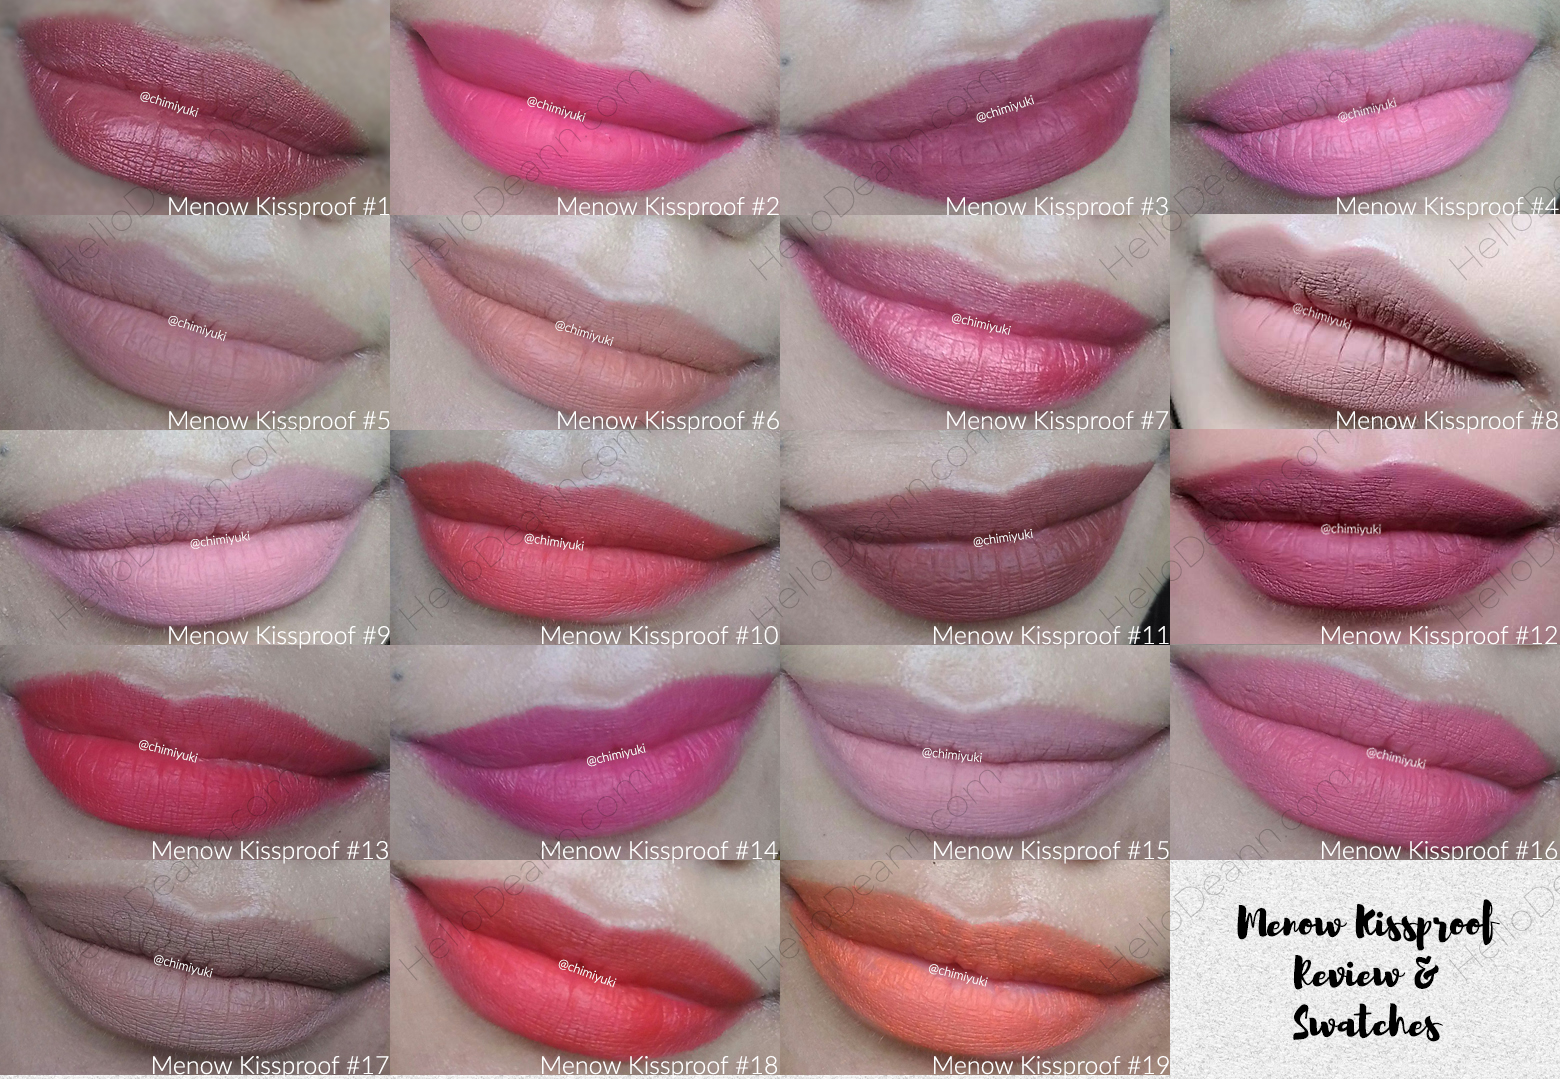 Hello Deann menow kissproof shades, review, swatches closer lips 1-19